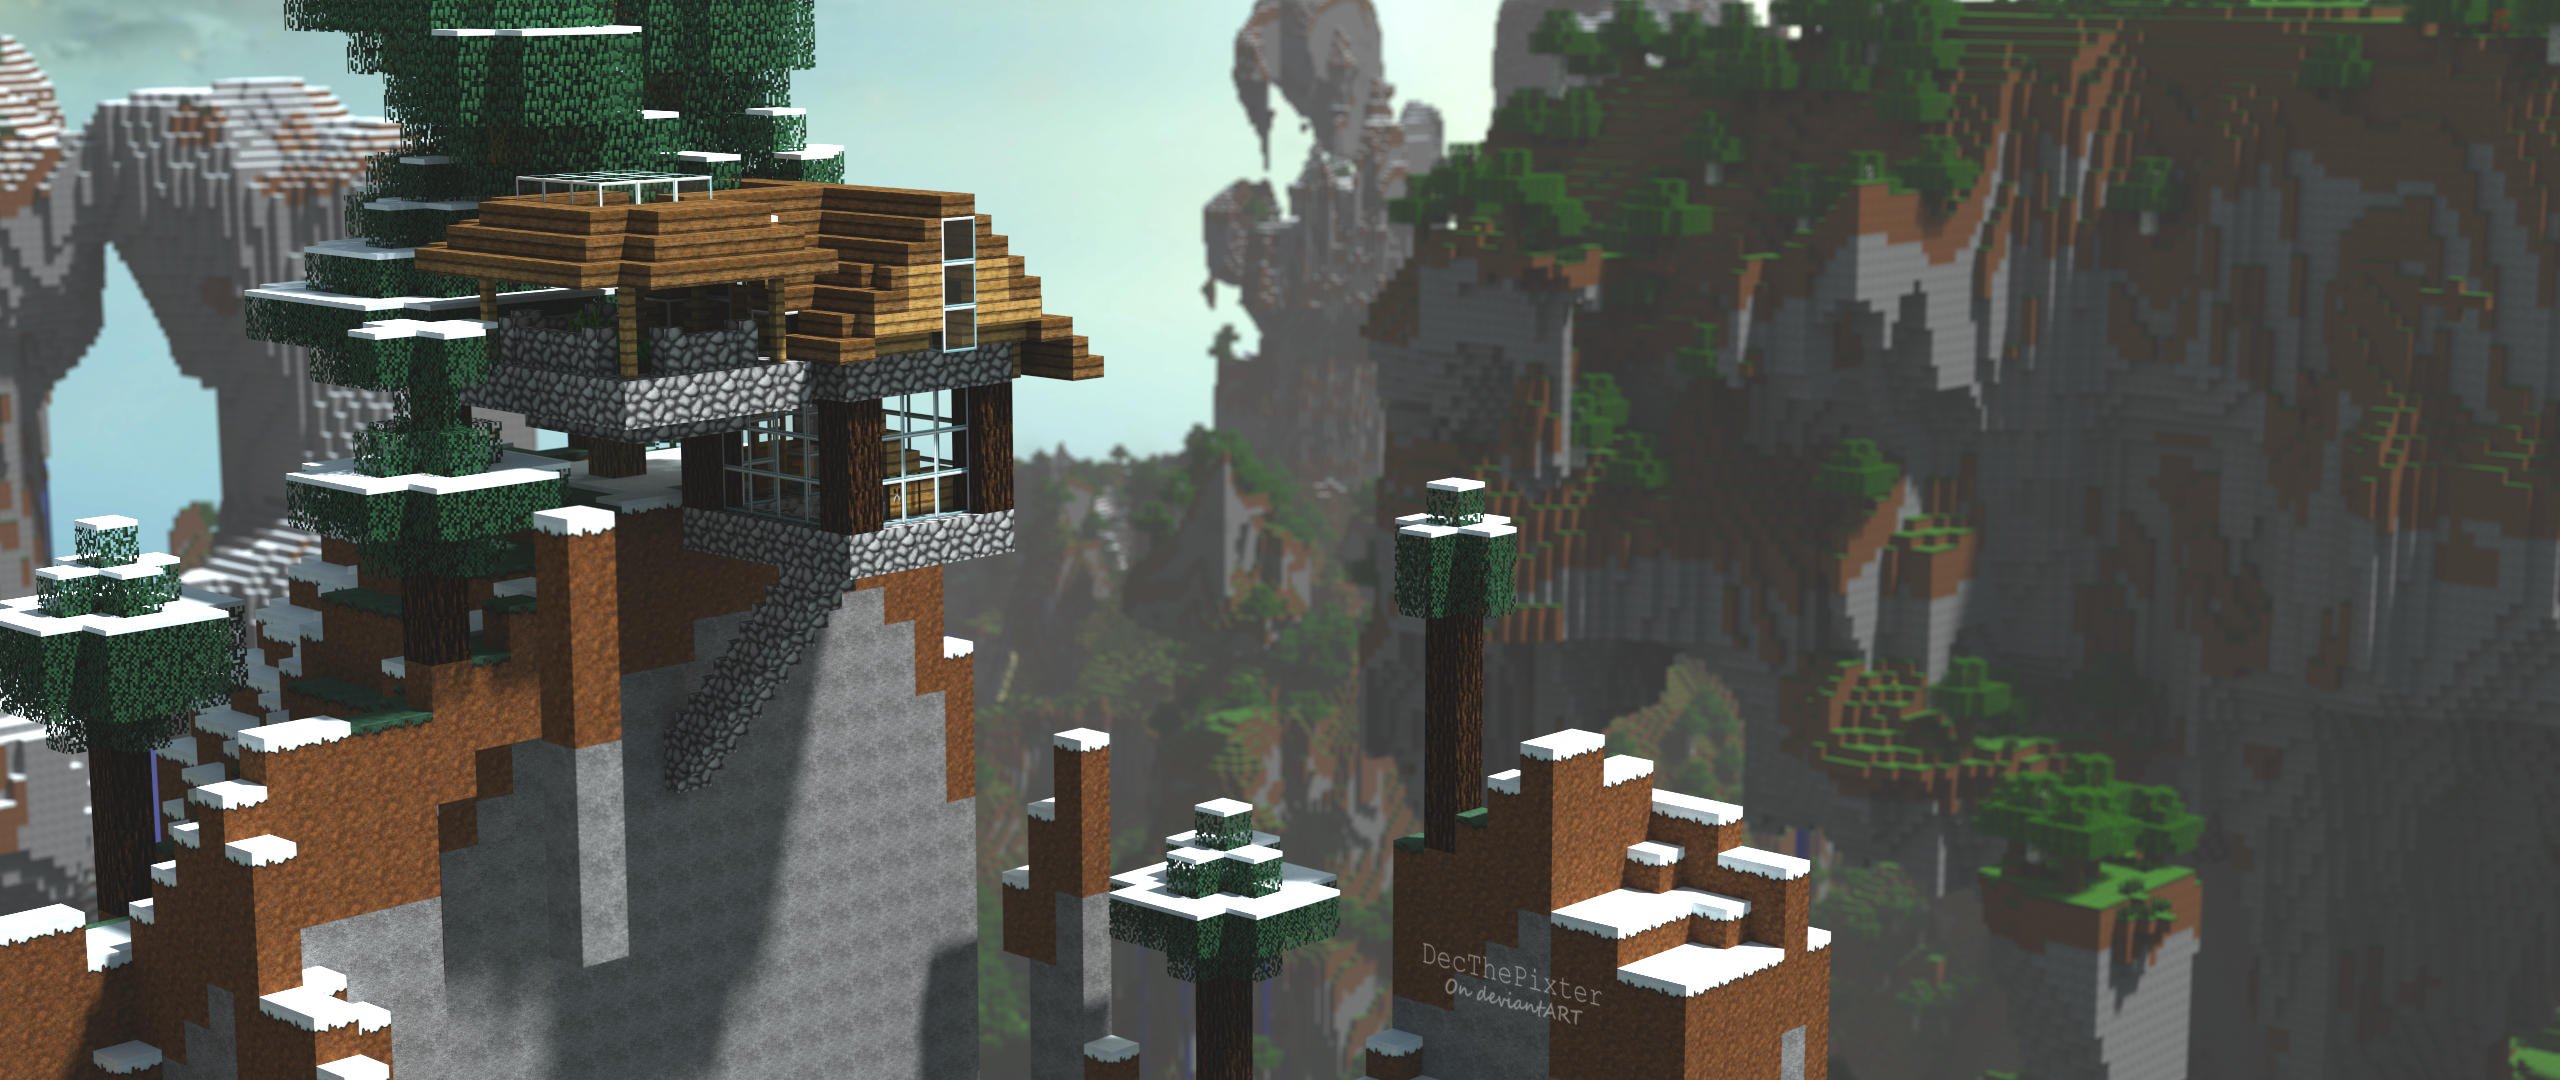 Mountain top home minecraft survival build by for How to build a house in a mountain